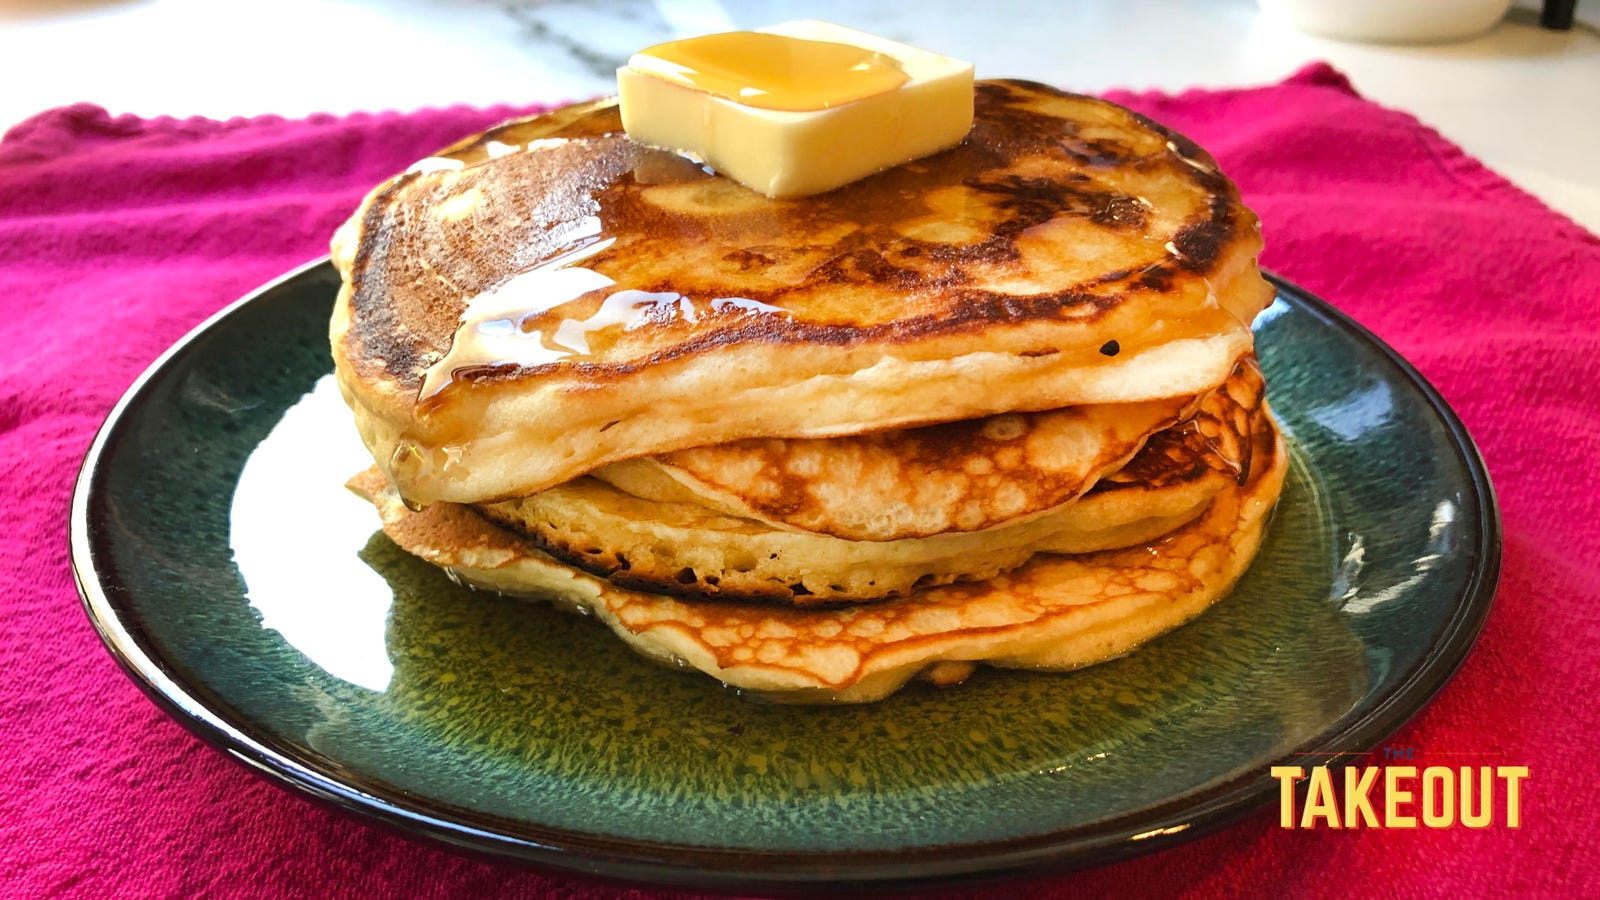 These magnificent pancakes are made from French onion dip